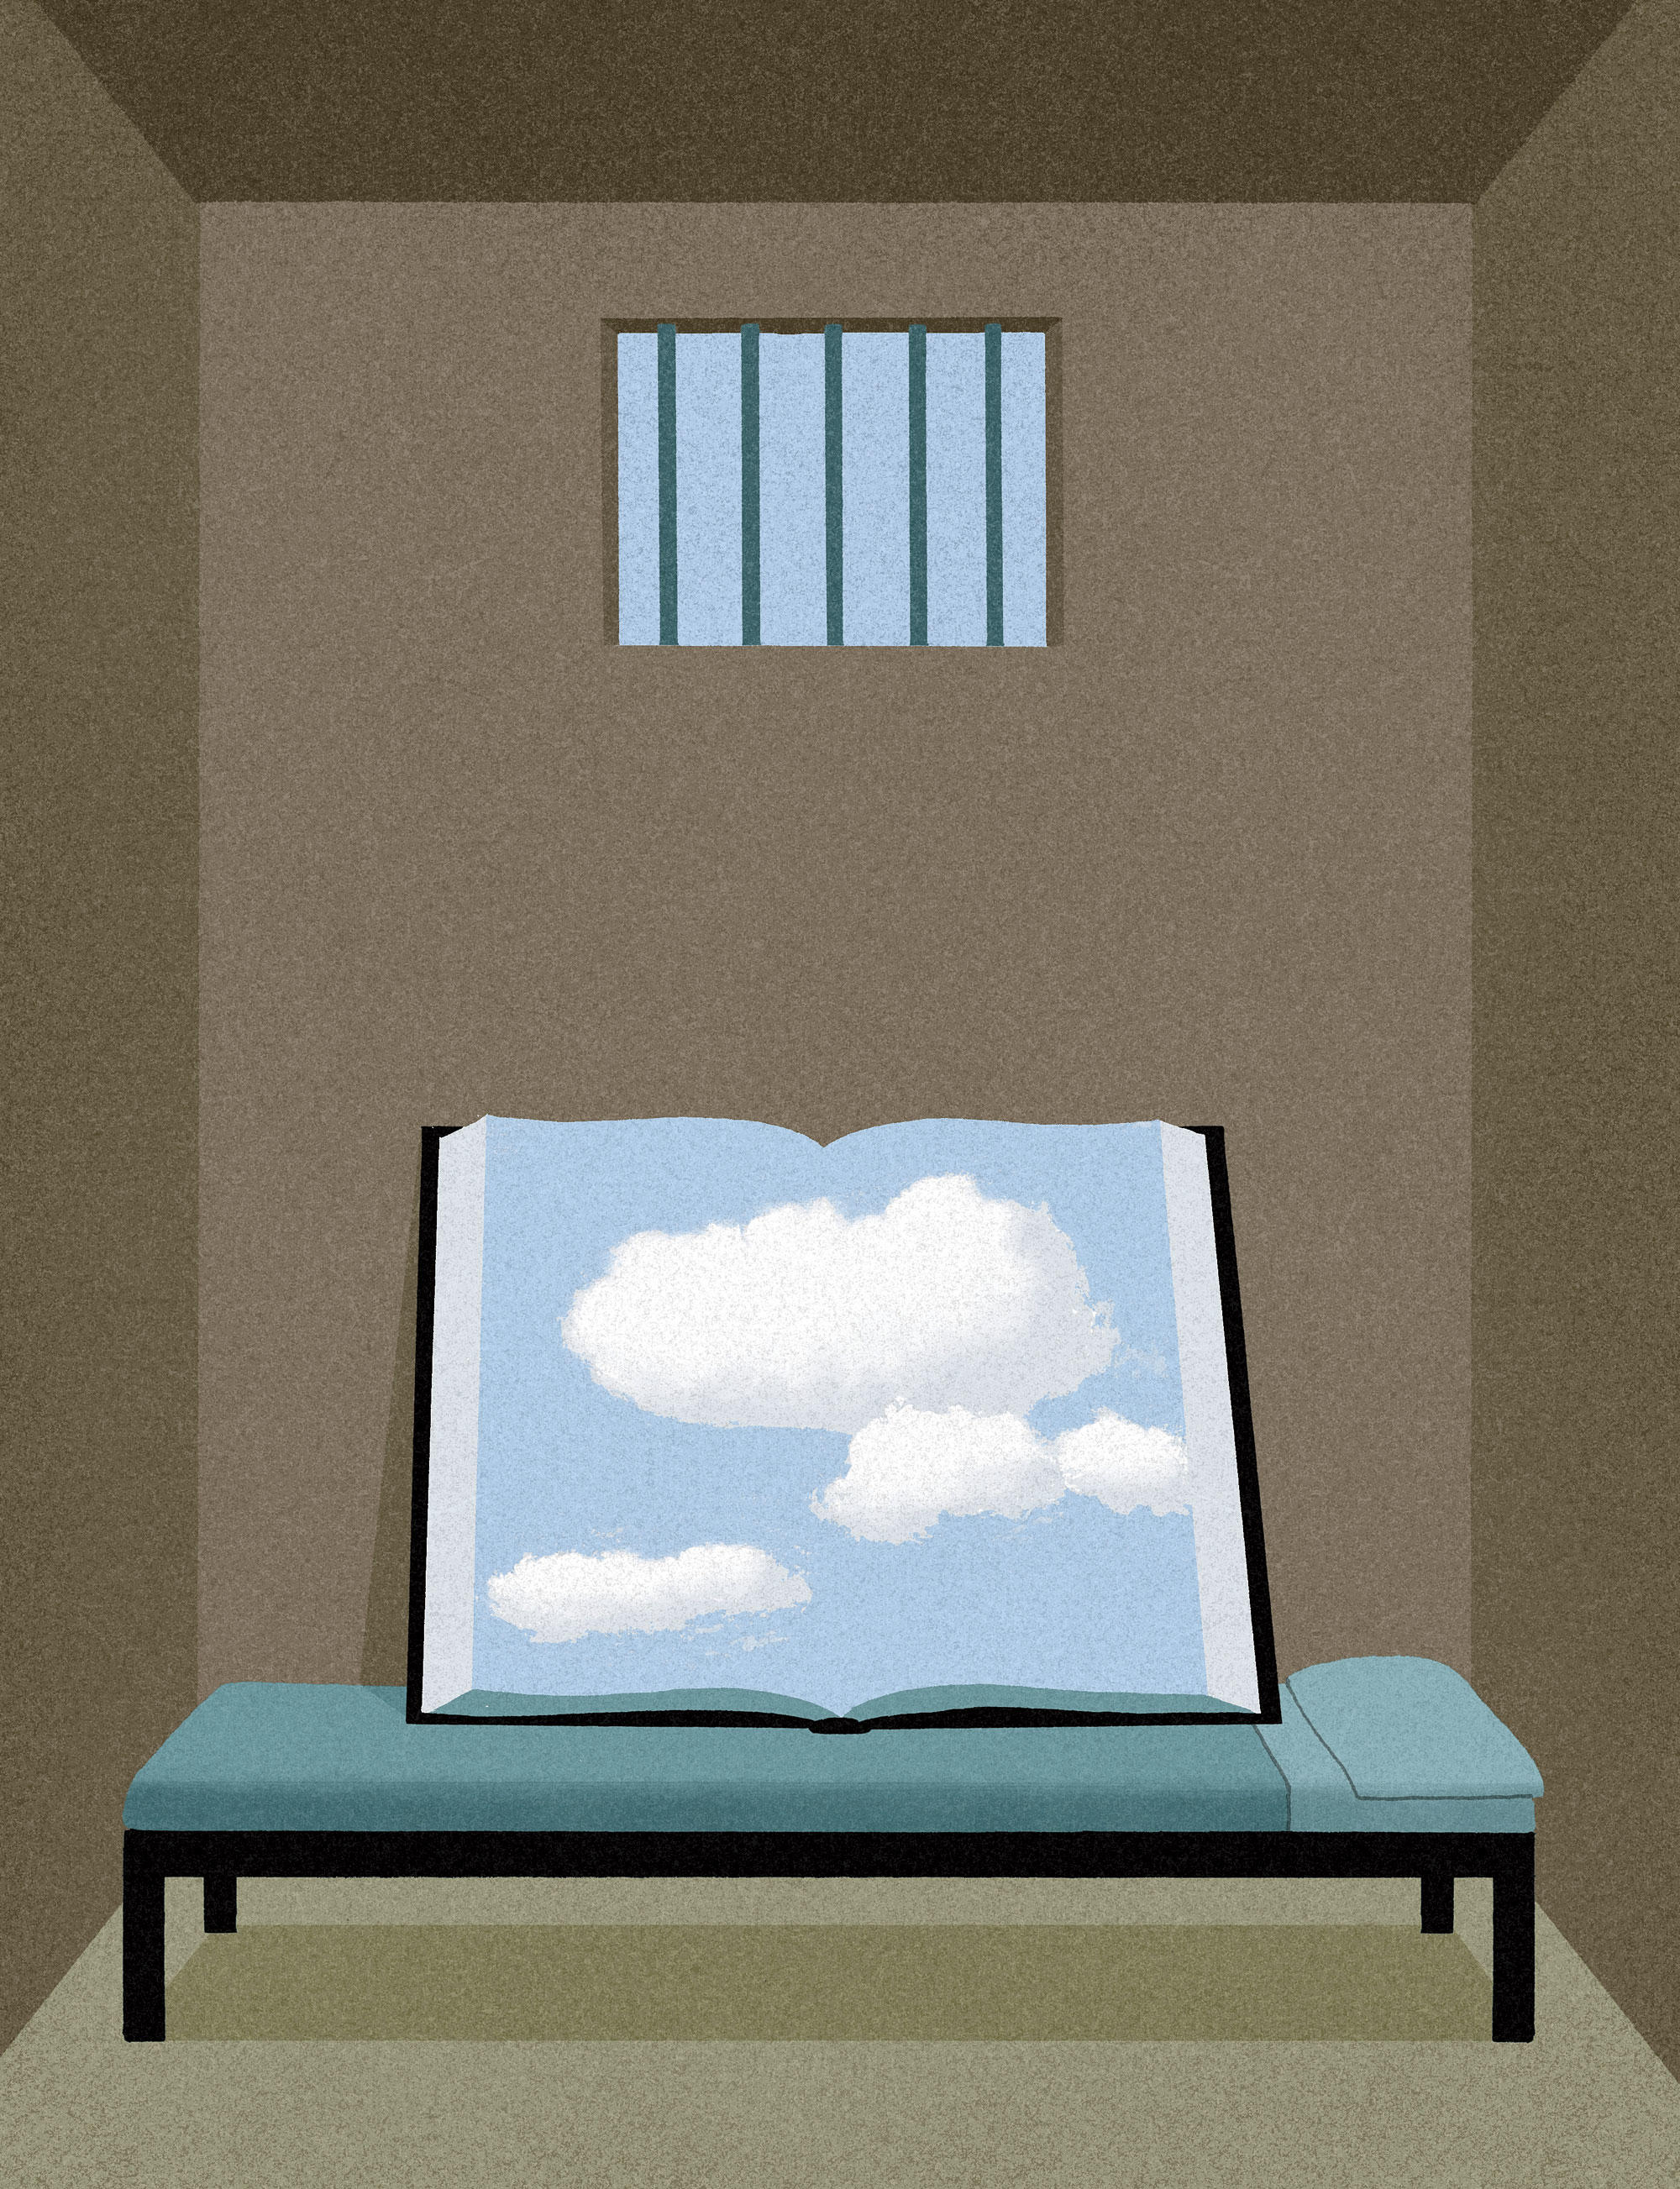 Illustration of book in prison cell